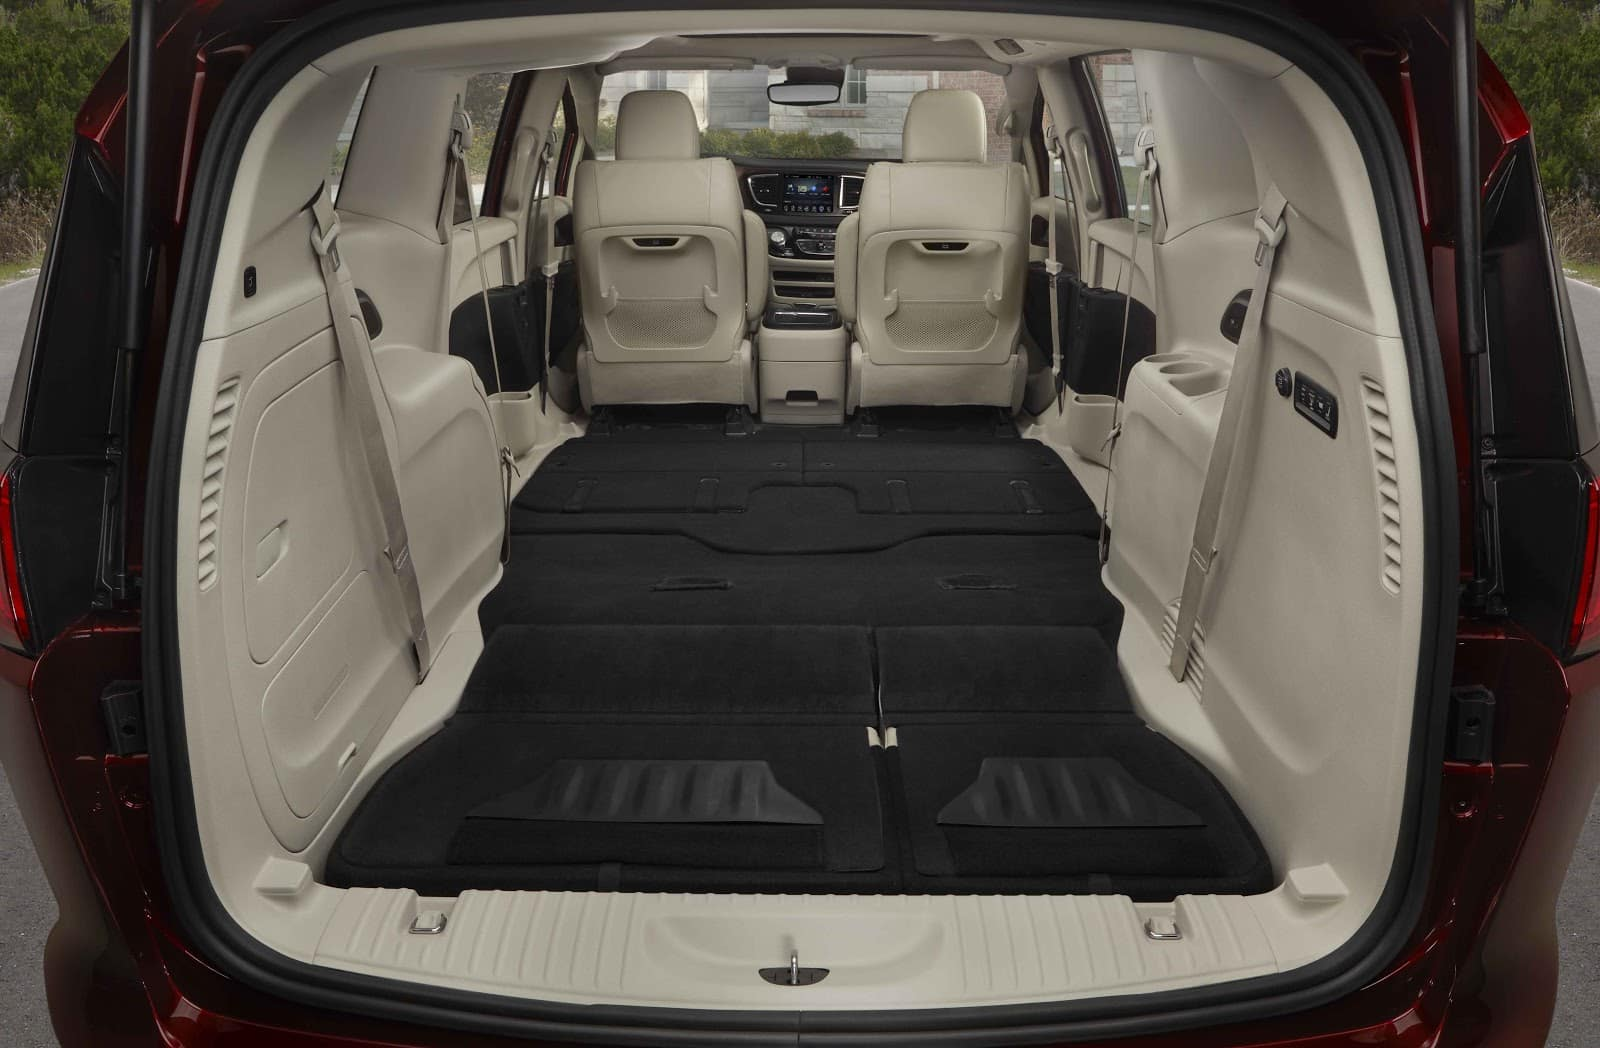 Stow N Go Feature of 2019 Chrysler Pacifica Feature Shown with Seats Folded Down All The Way